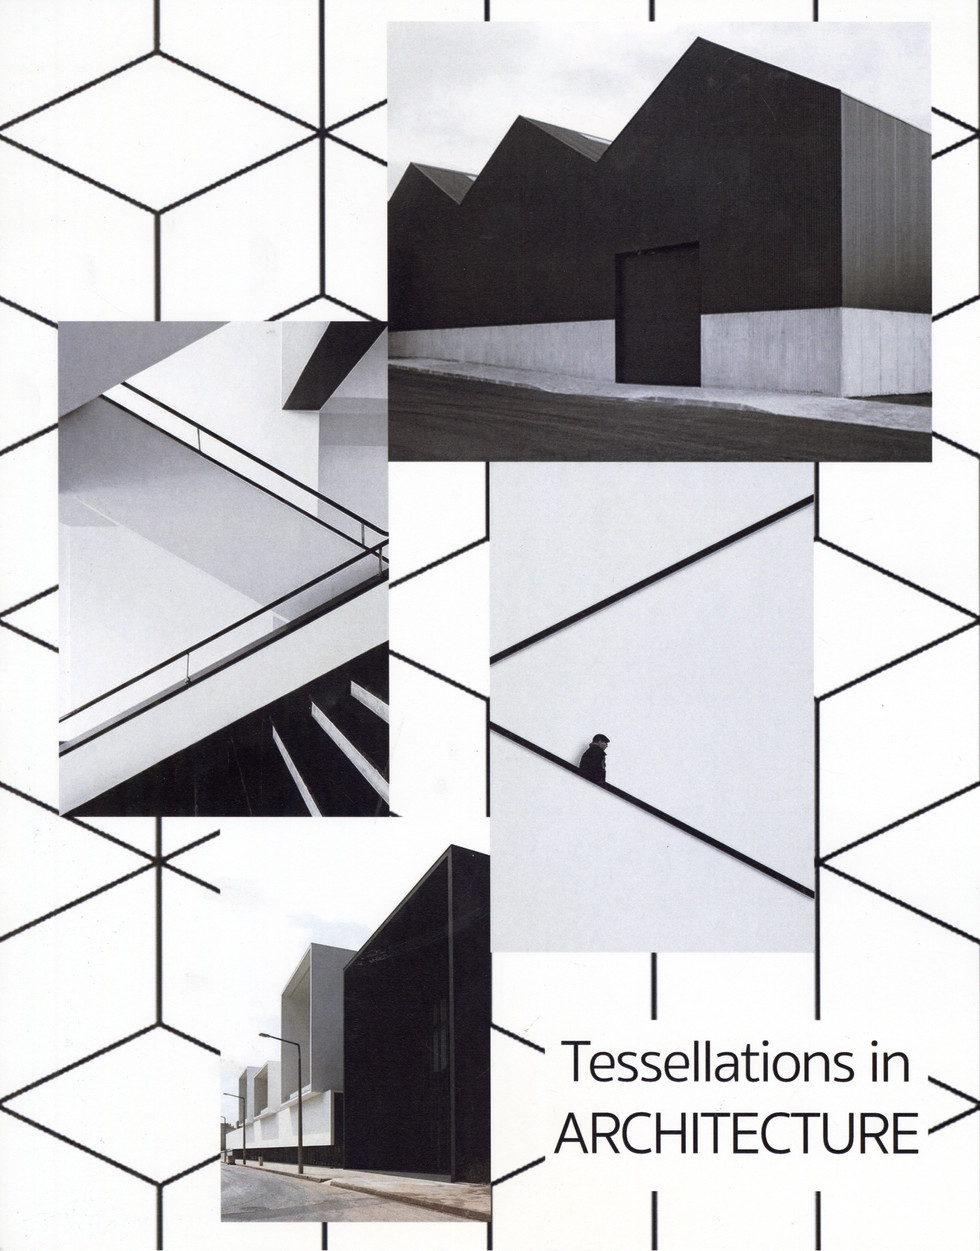 TESSELLATIONS IN ARCHITECTURE